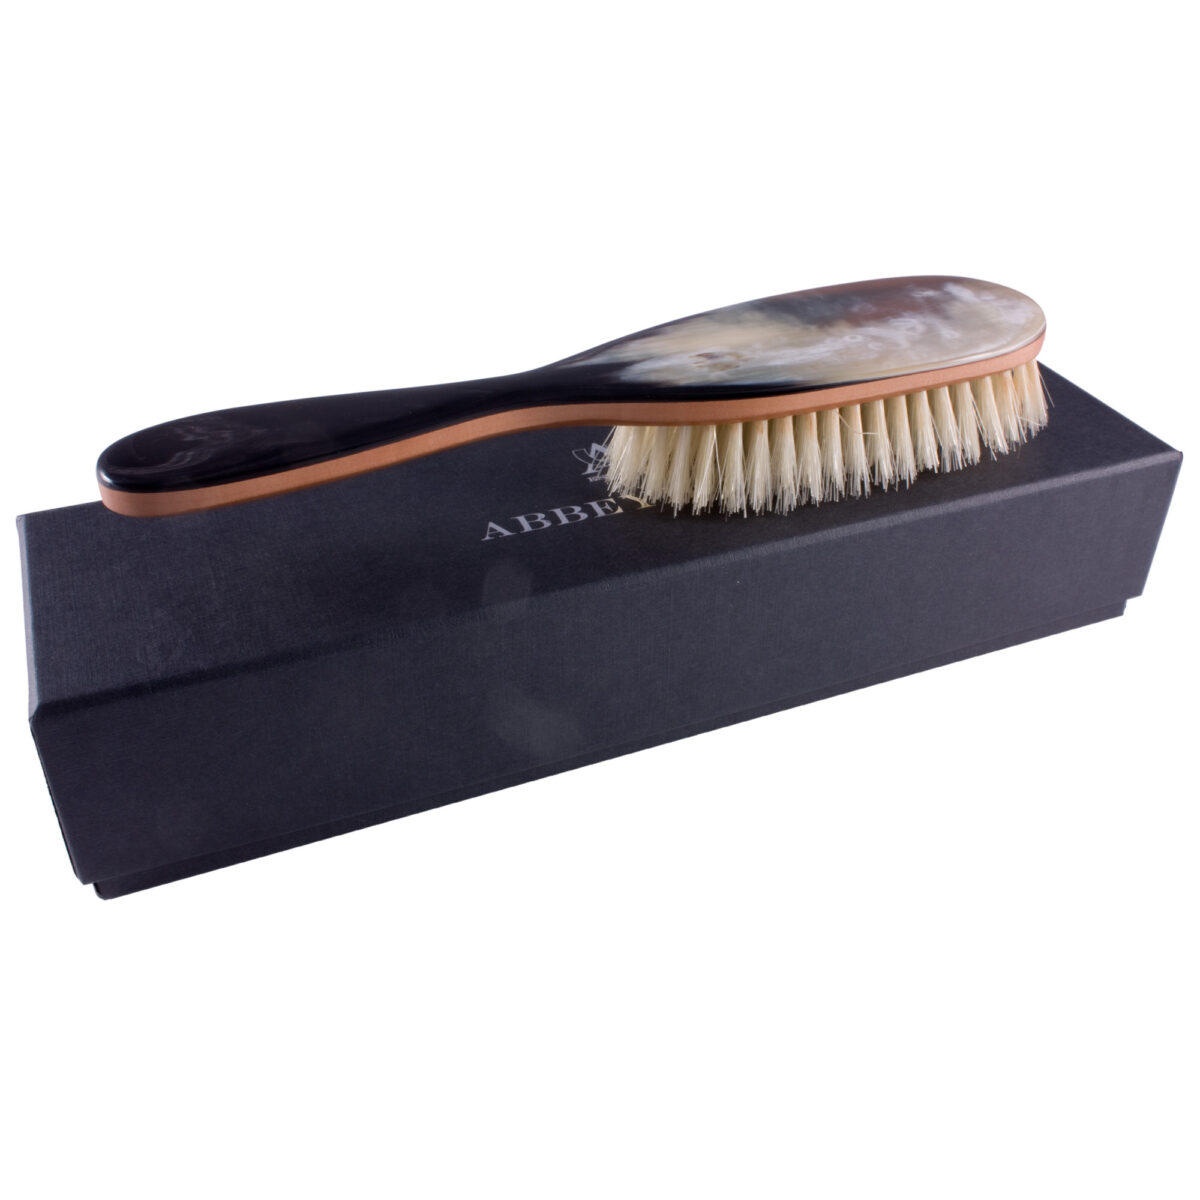 Abbeyhorn Hair Brush Pear Wood